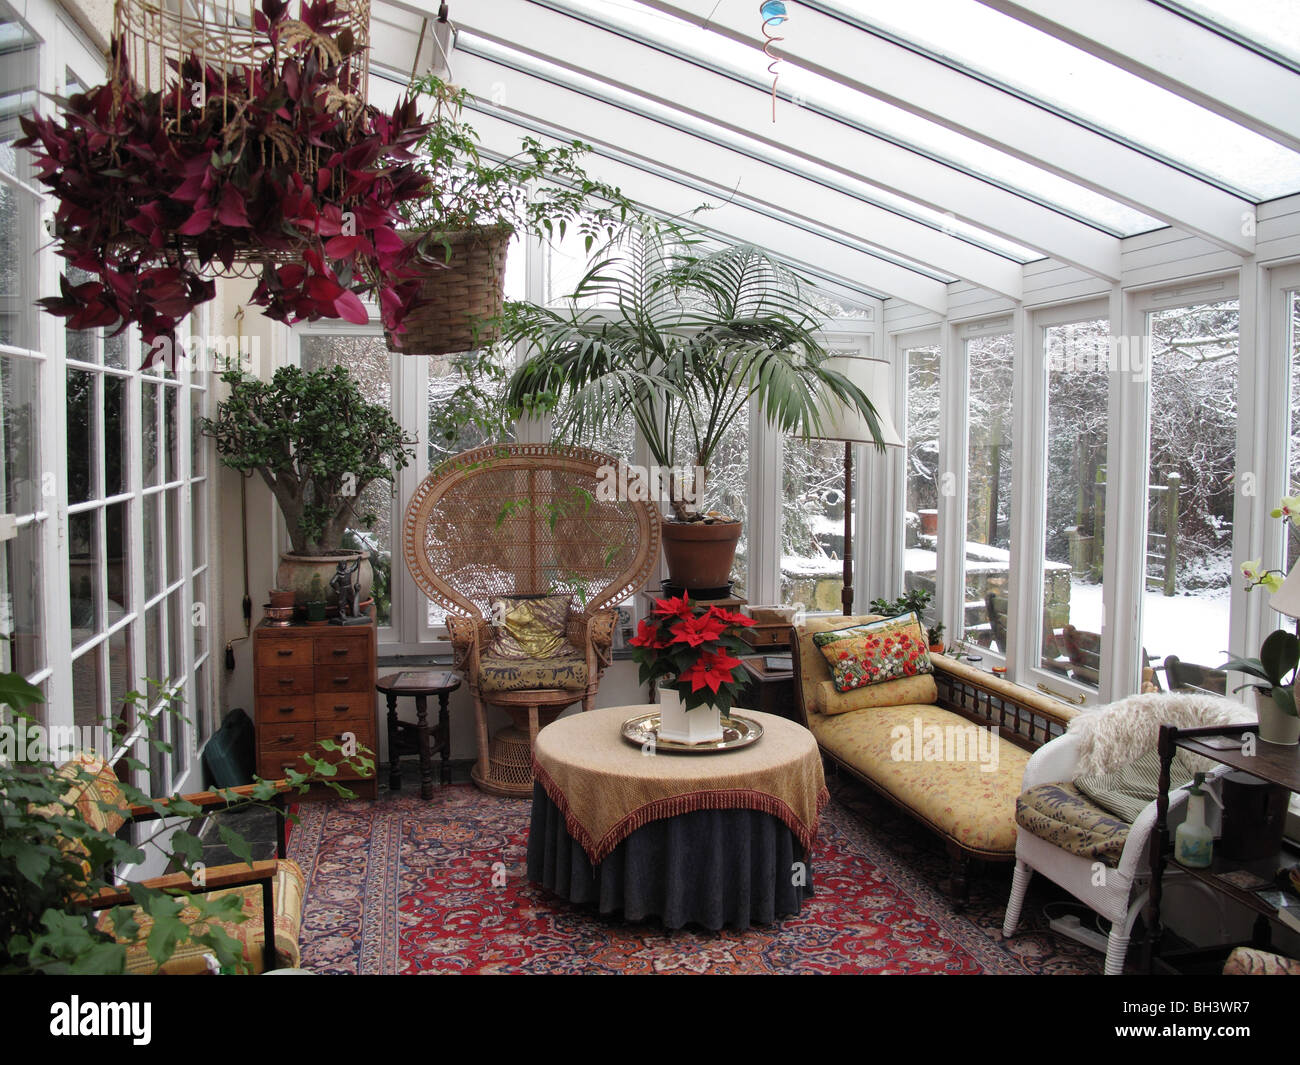 White painted hardwood conservatory with plants and furniture in mid winter with snow outside - Stock Image